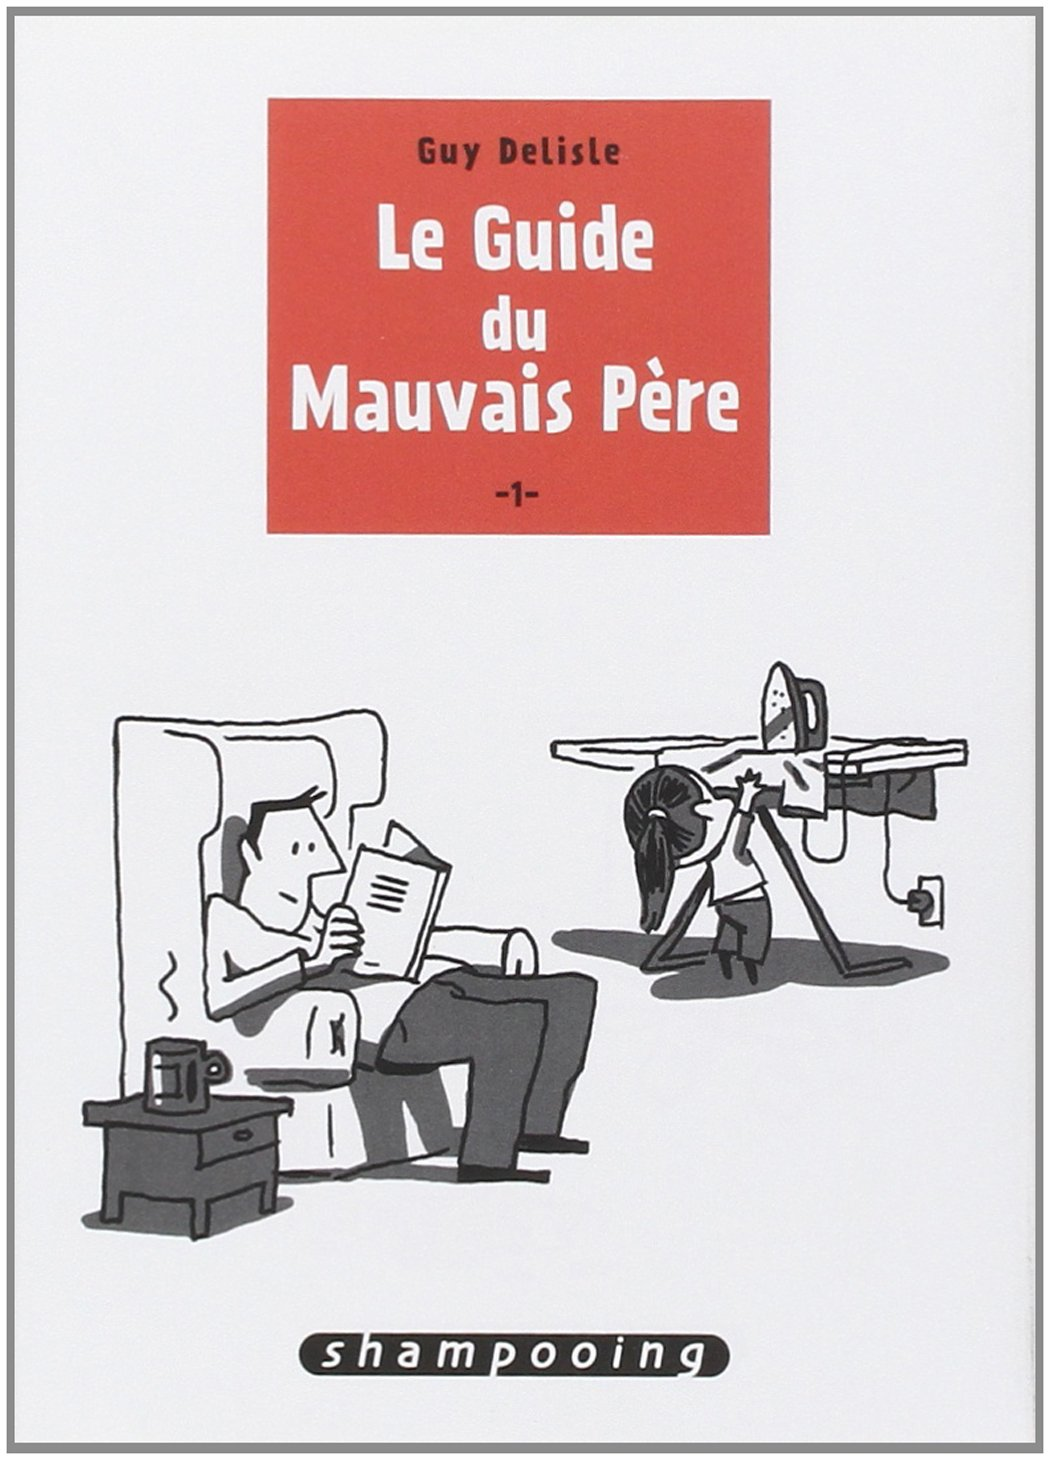 Amazon: Buy Le Guide Du Mauvais Pere Book Online At Low Prices In India   Le Guide Du Mauvais Pere Reviews & Ratings